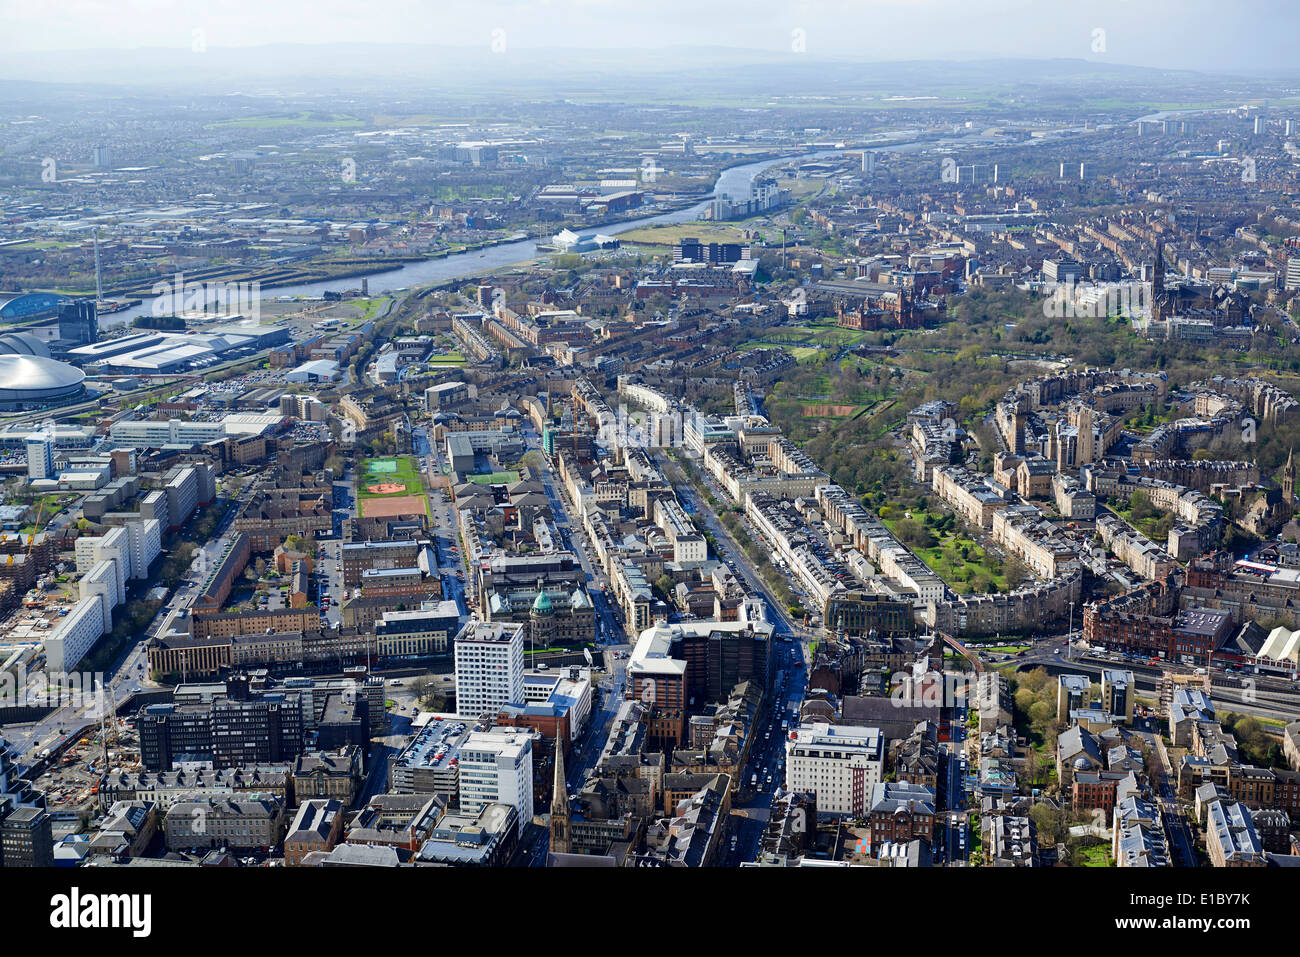 Glasgow City Centre from the air, Central Scotland, UK, looking east over the west end and the Clyde - Stock Image